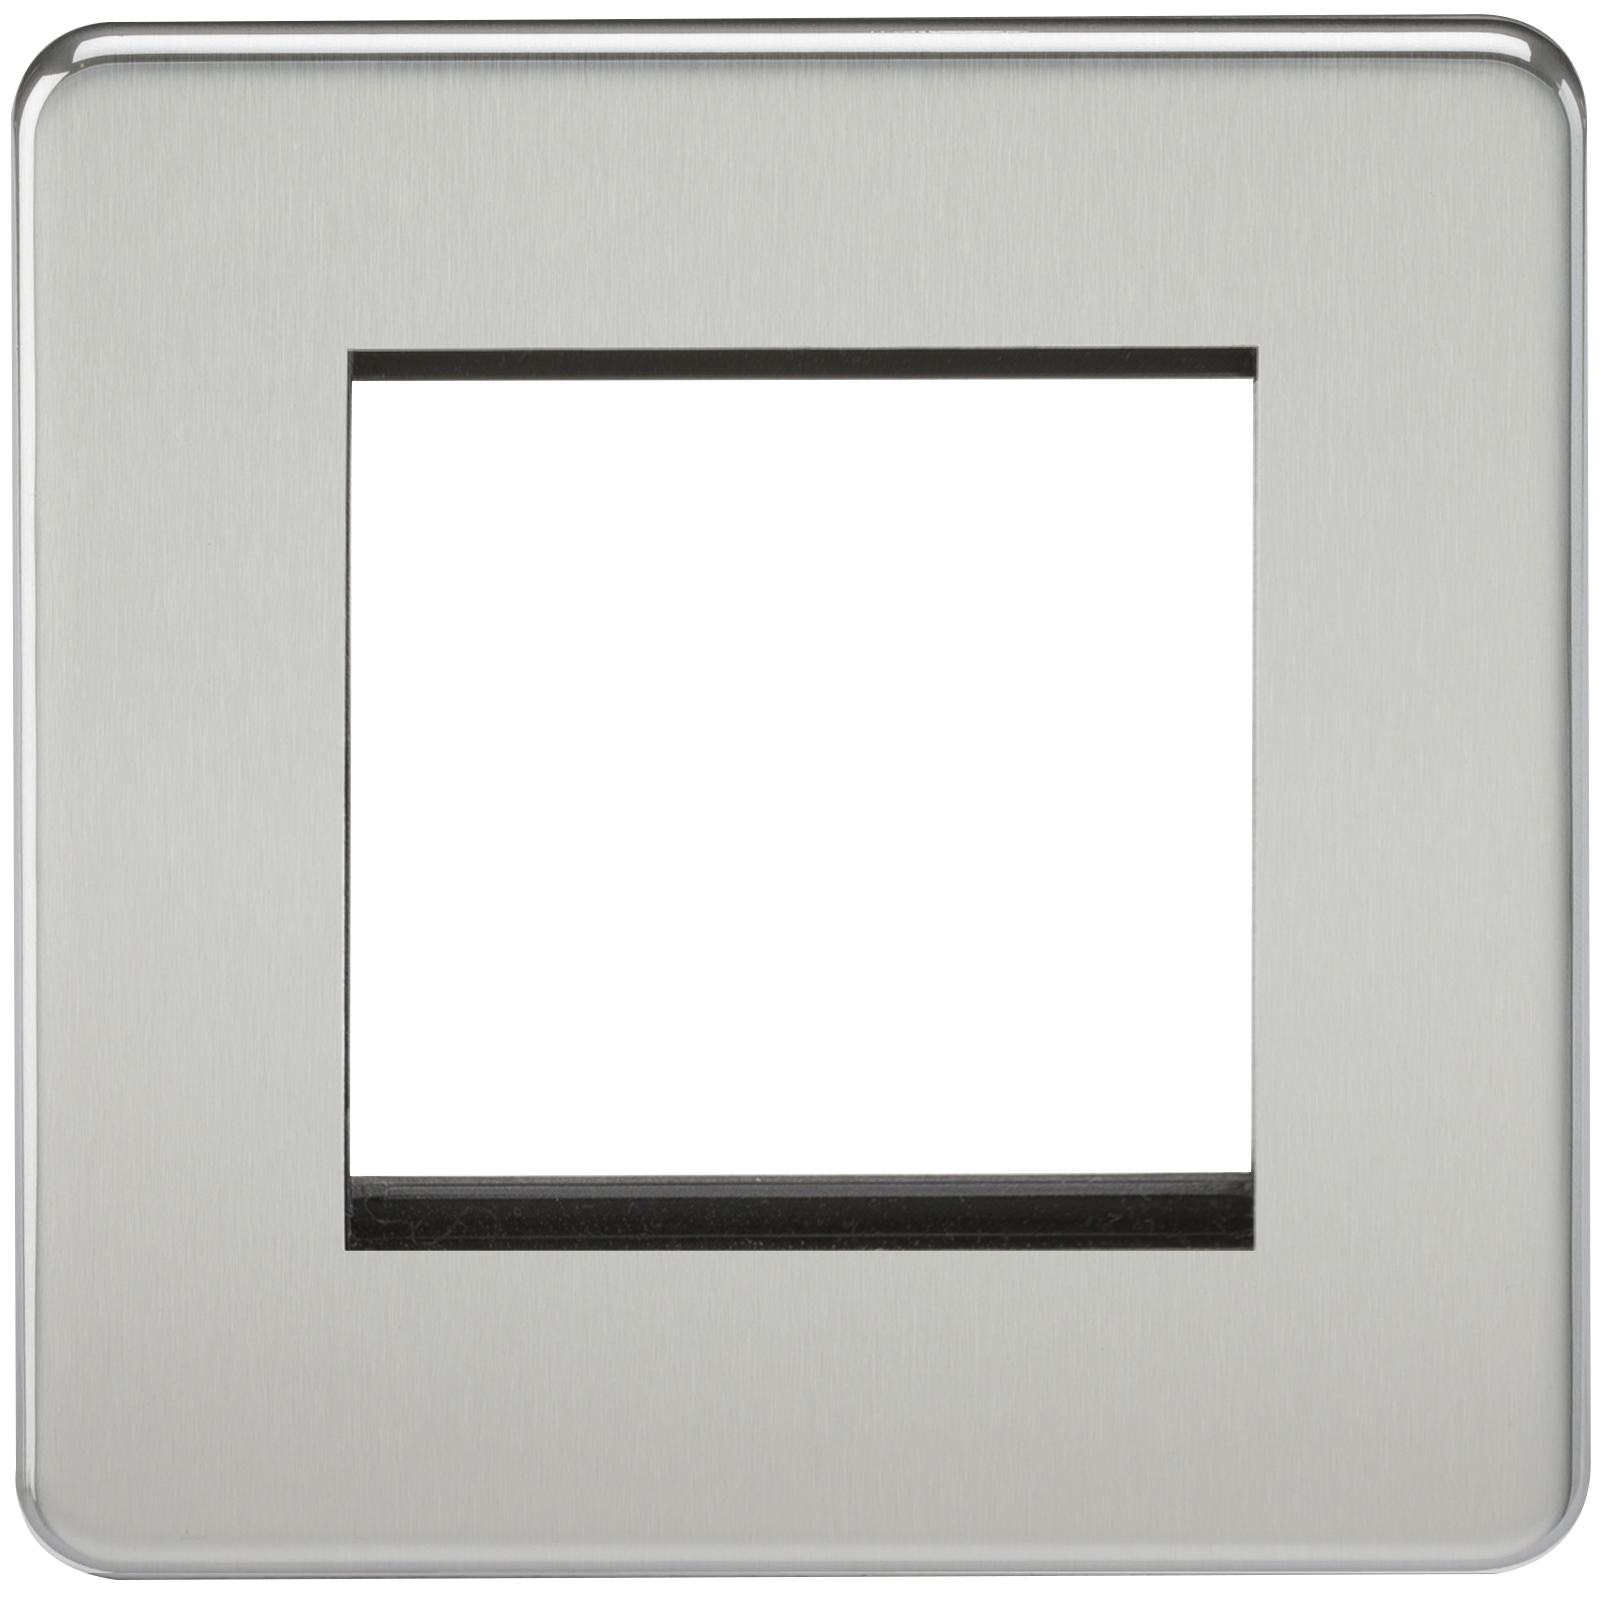 SCREWLESS 2G MODULAR FACEPLATE - POLISHED CHROME